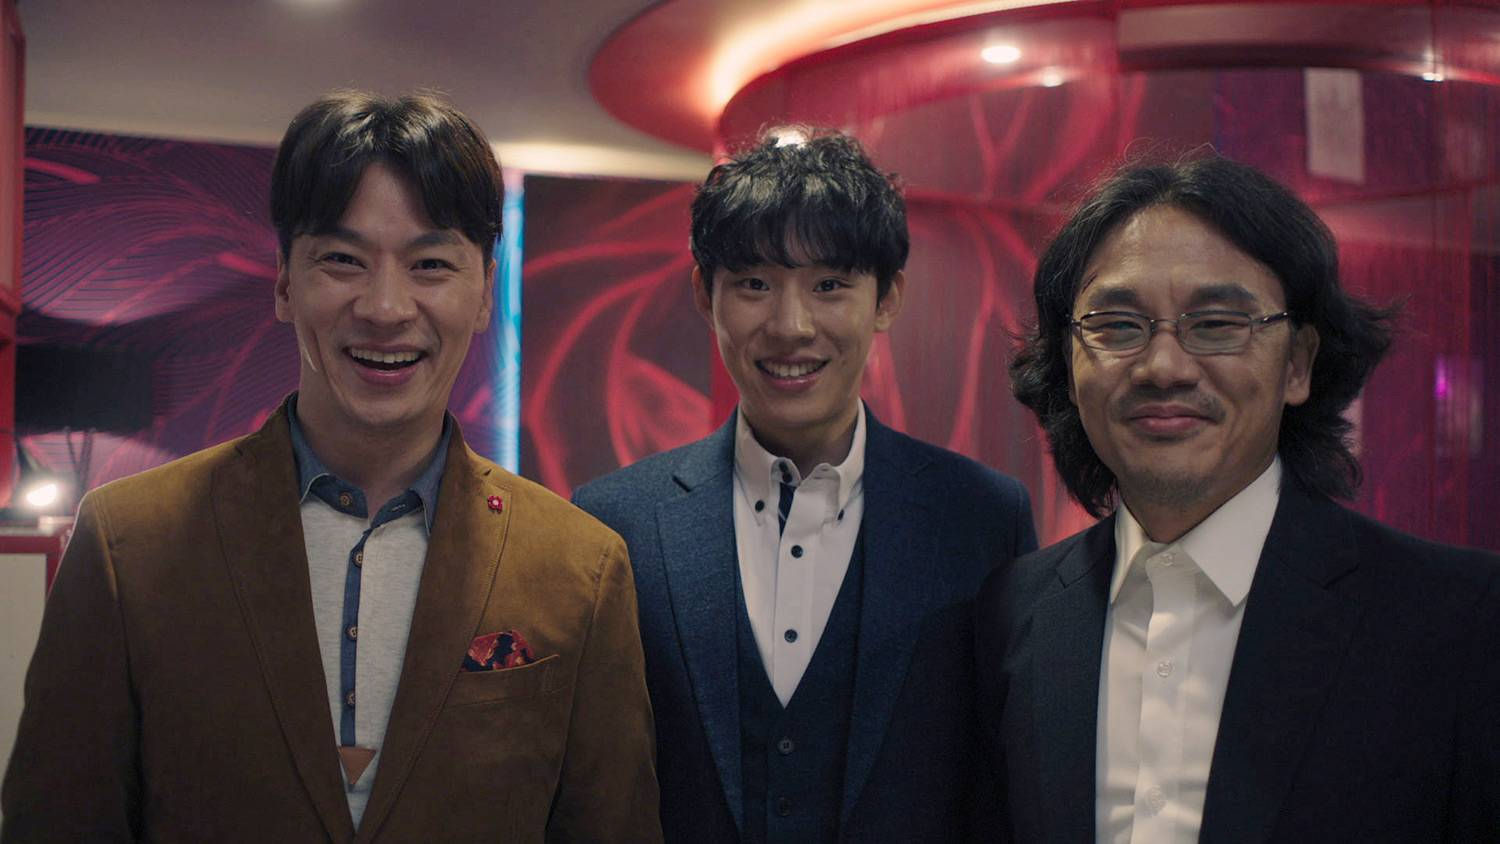 Photos] Energetic New Stills Released for Black Comedy